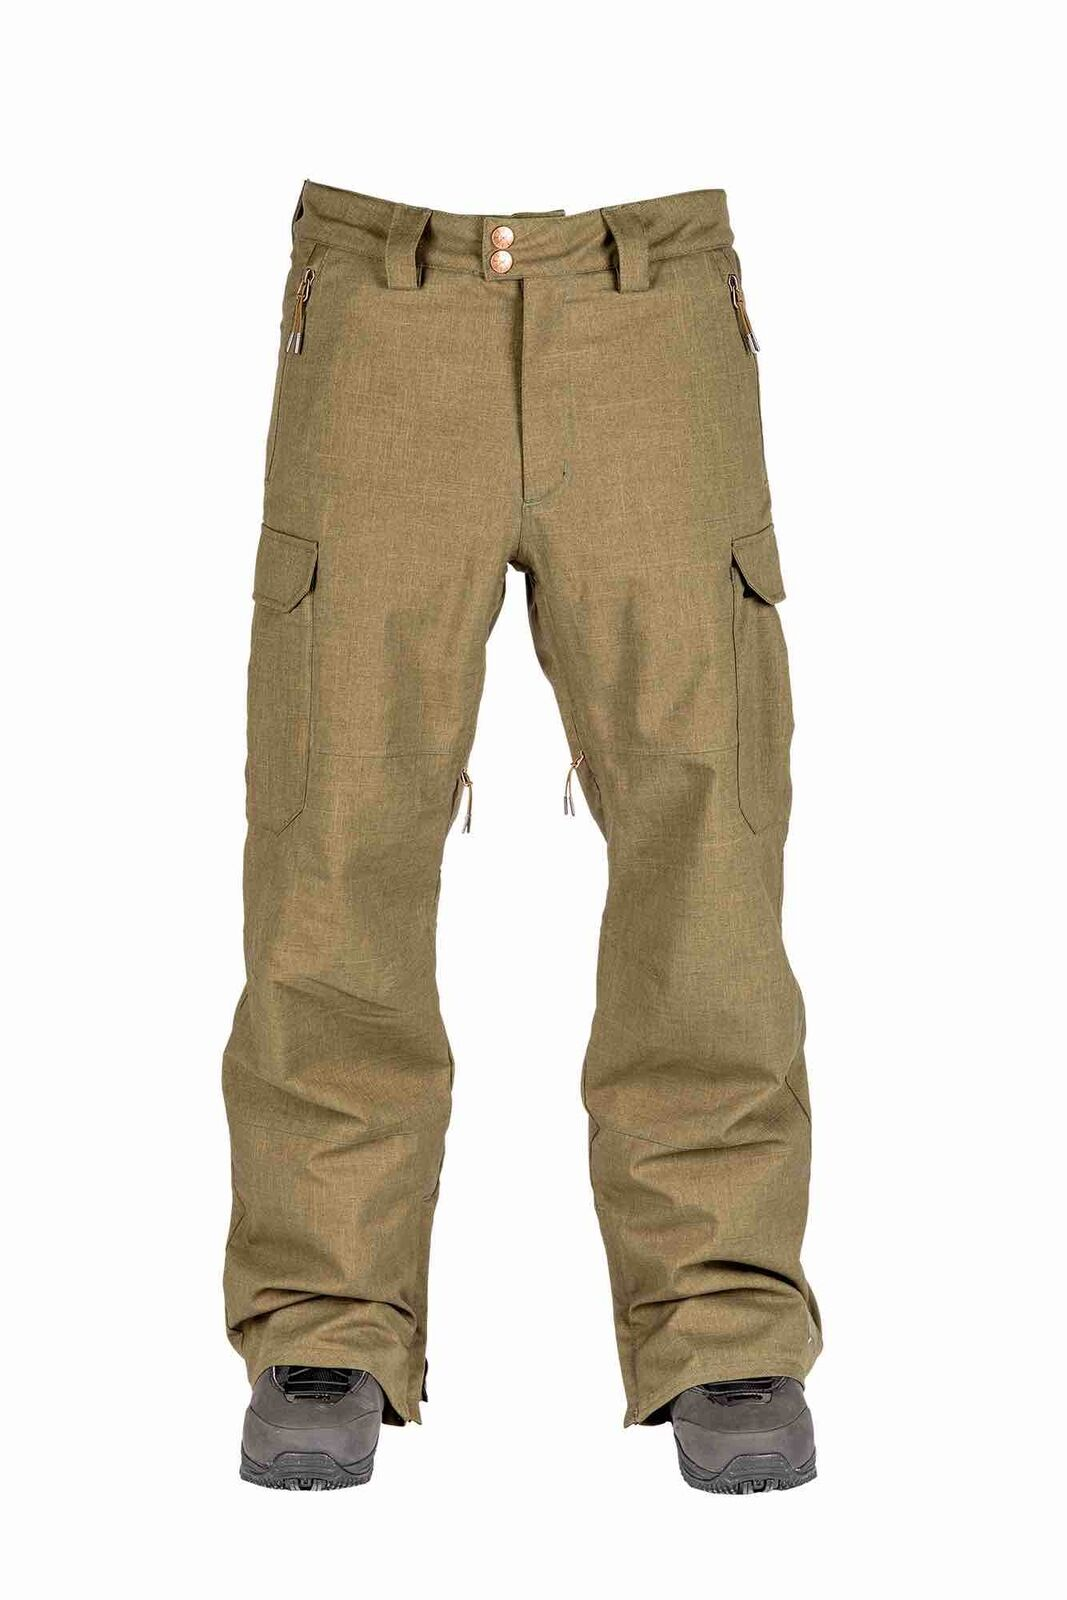 L1 Brigade Pant Military Herren Snowboardhose Skihose Snowboard Hose Outerwear